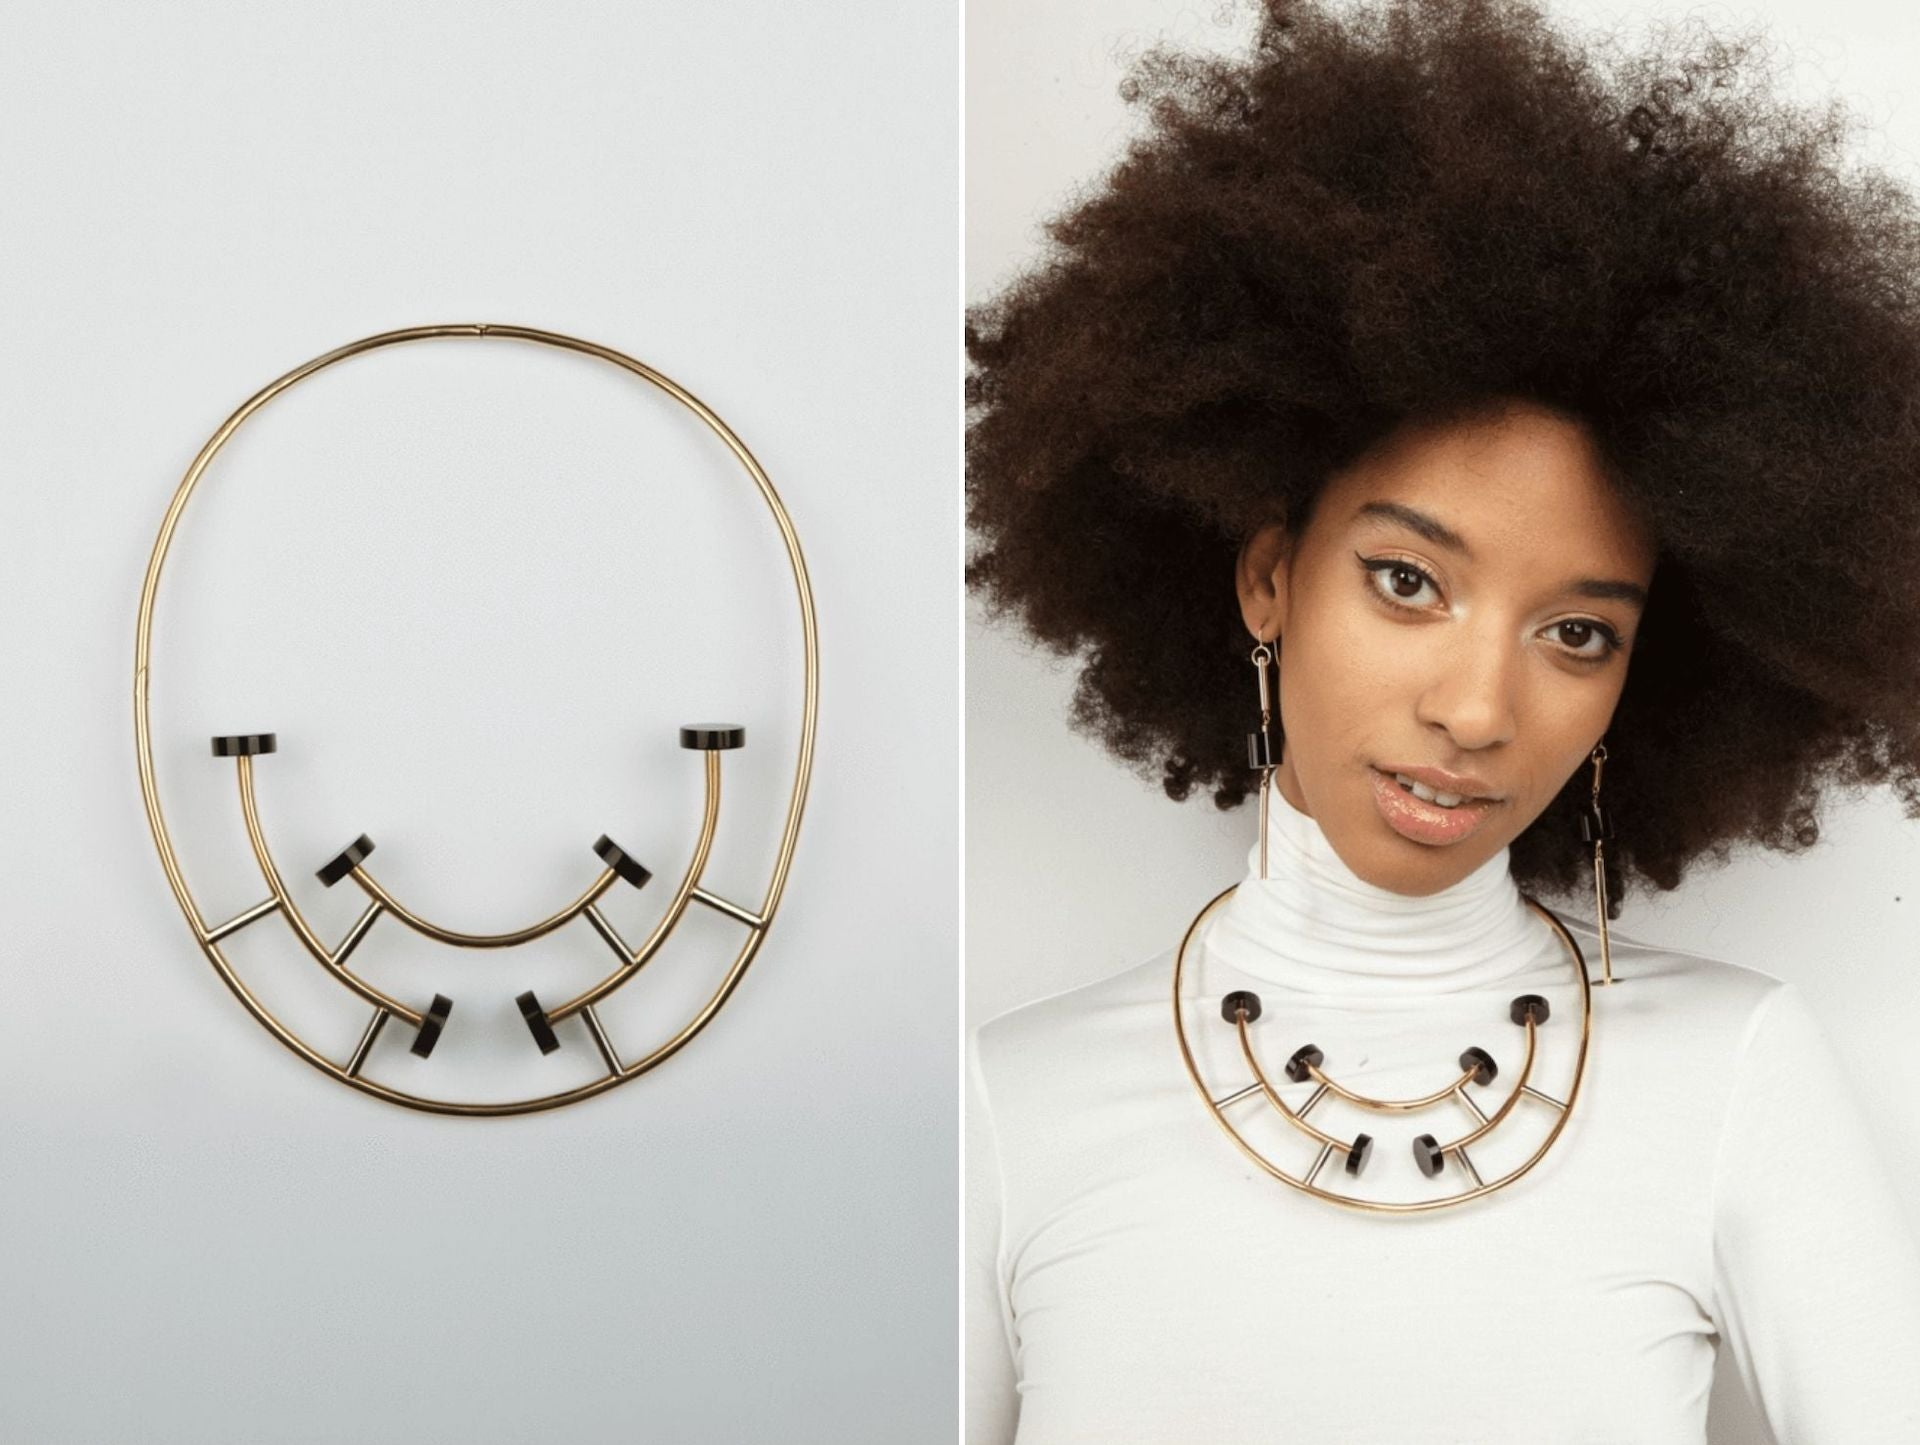 18 Carat Gold & Black Onyx Necklace by Ettore Sottsass, 1984-1986. Ettore Sottsass worn by model. Photos © Didier Ltd.